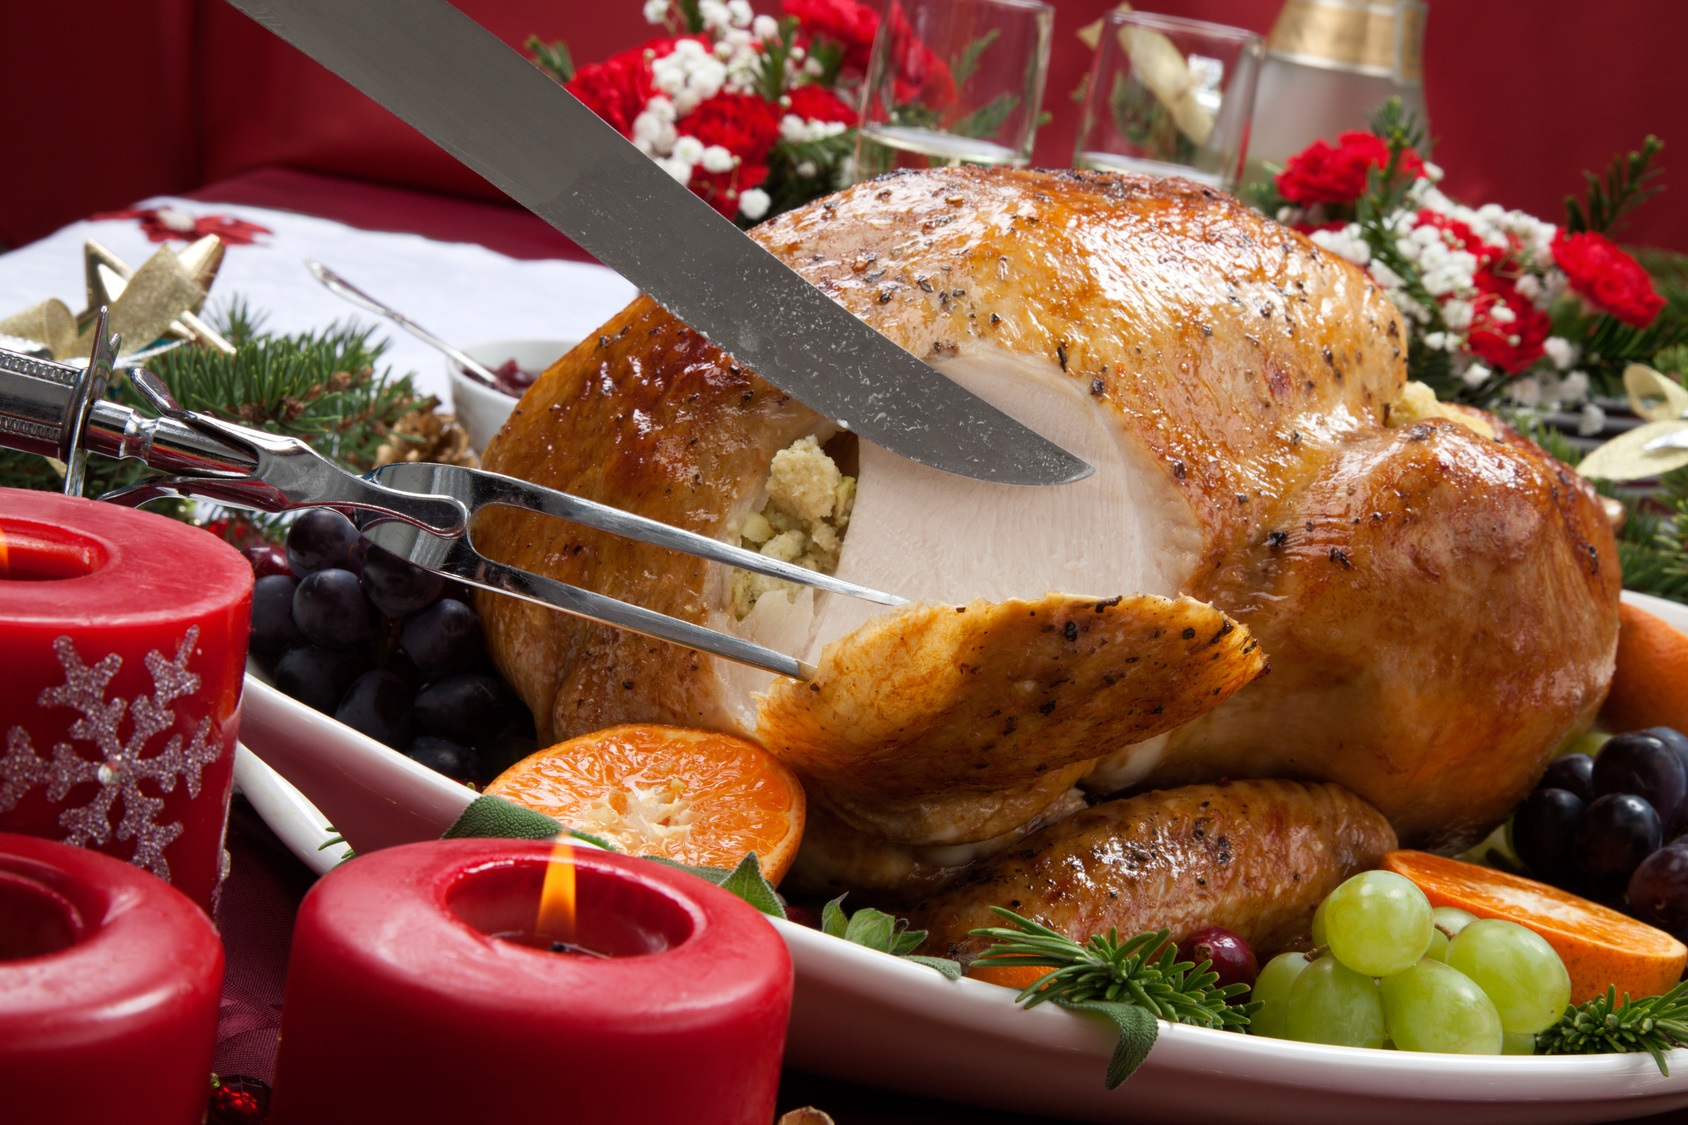 Chuch reveals Christmas Day meal plans